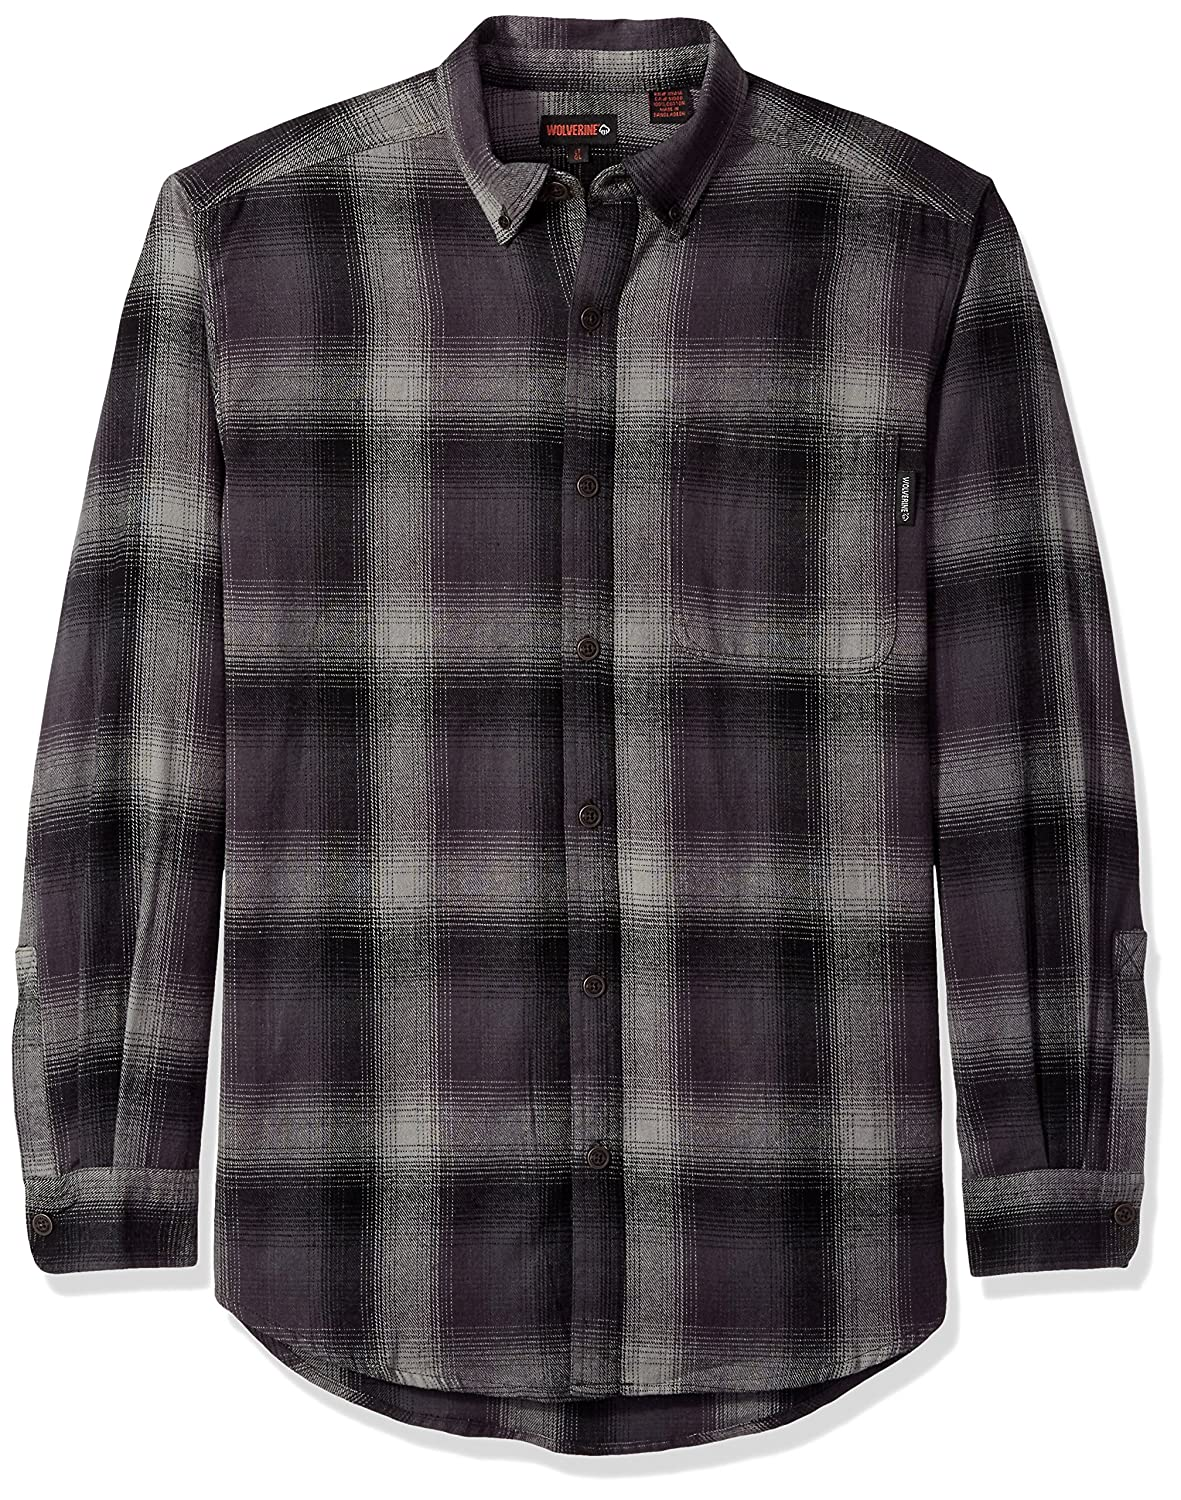 Wolverine SHIRT メンズ B072W83BRT X-Large Tall|Dust Plaid Dust Plaid X-Large Tall